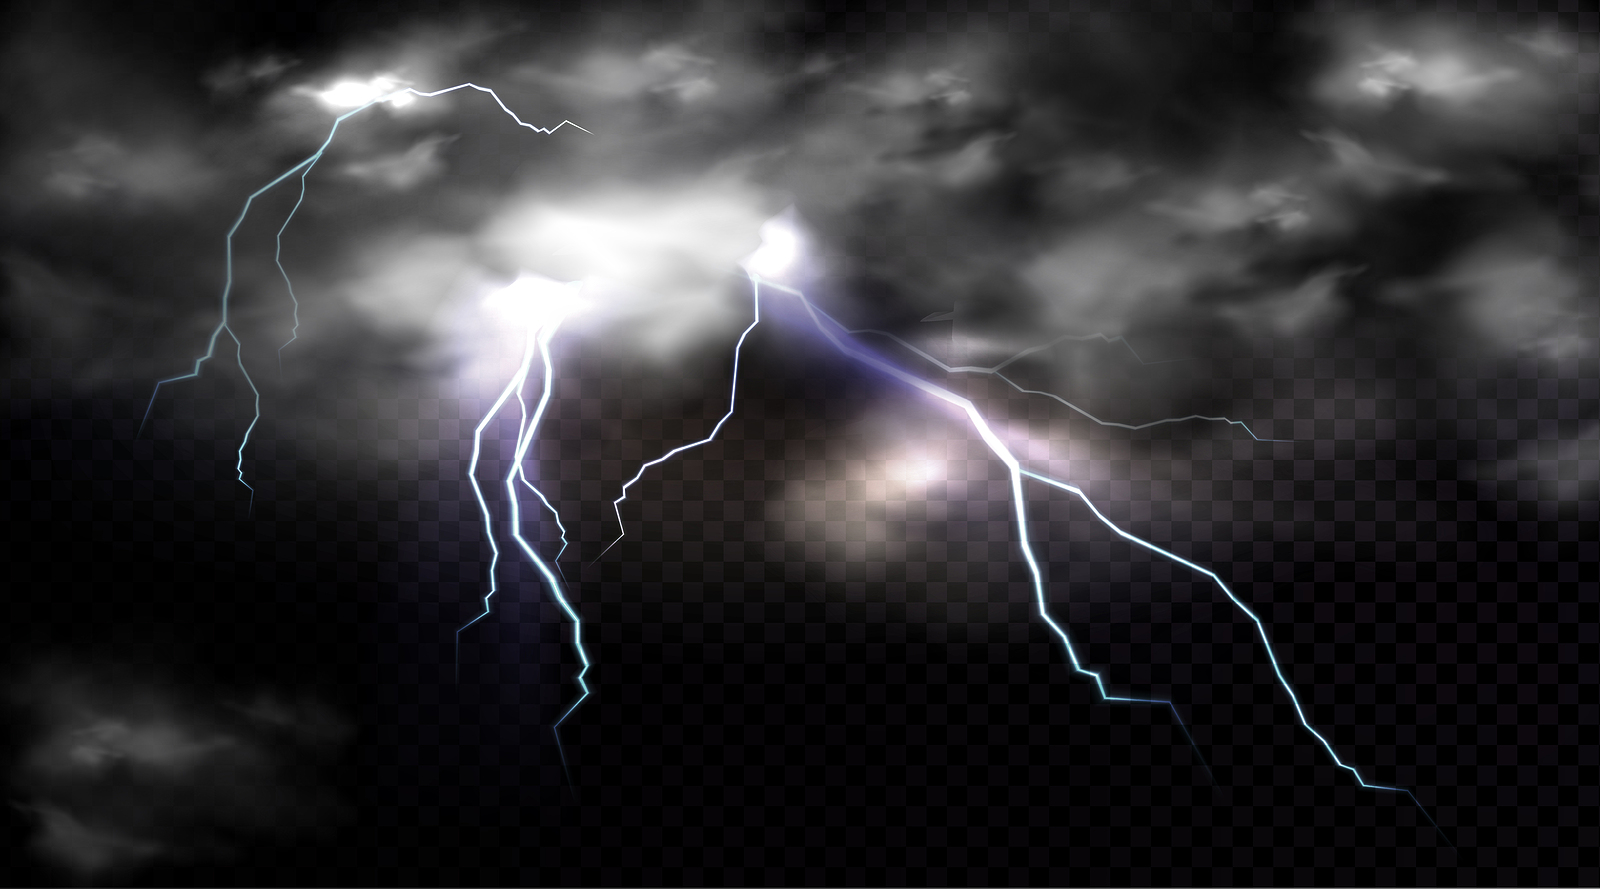 dc-electrical-storms-safety-wilcox-electric-dc